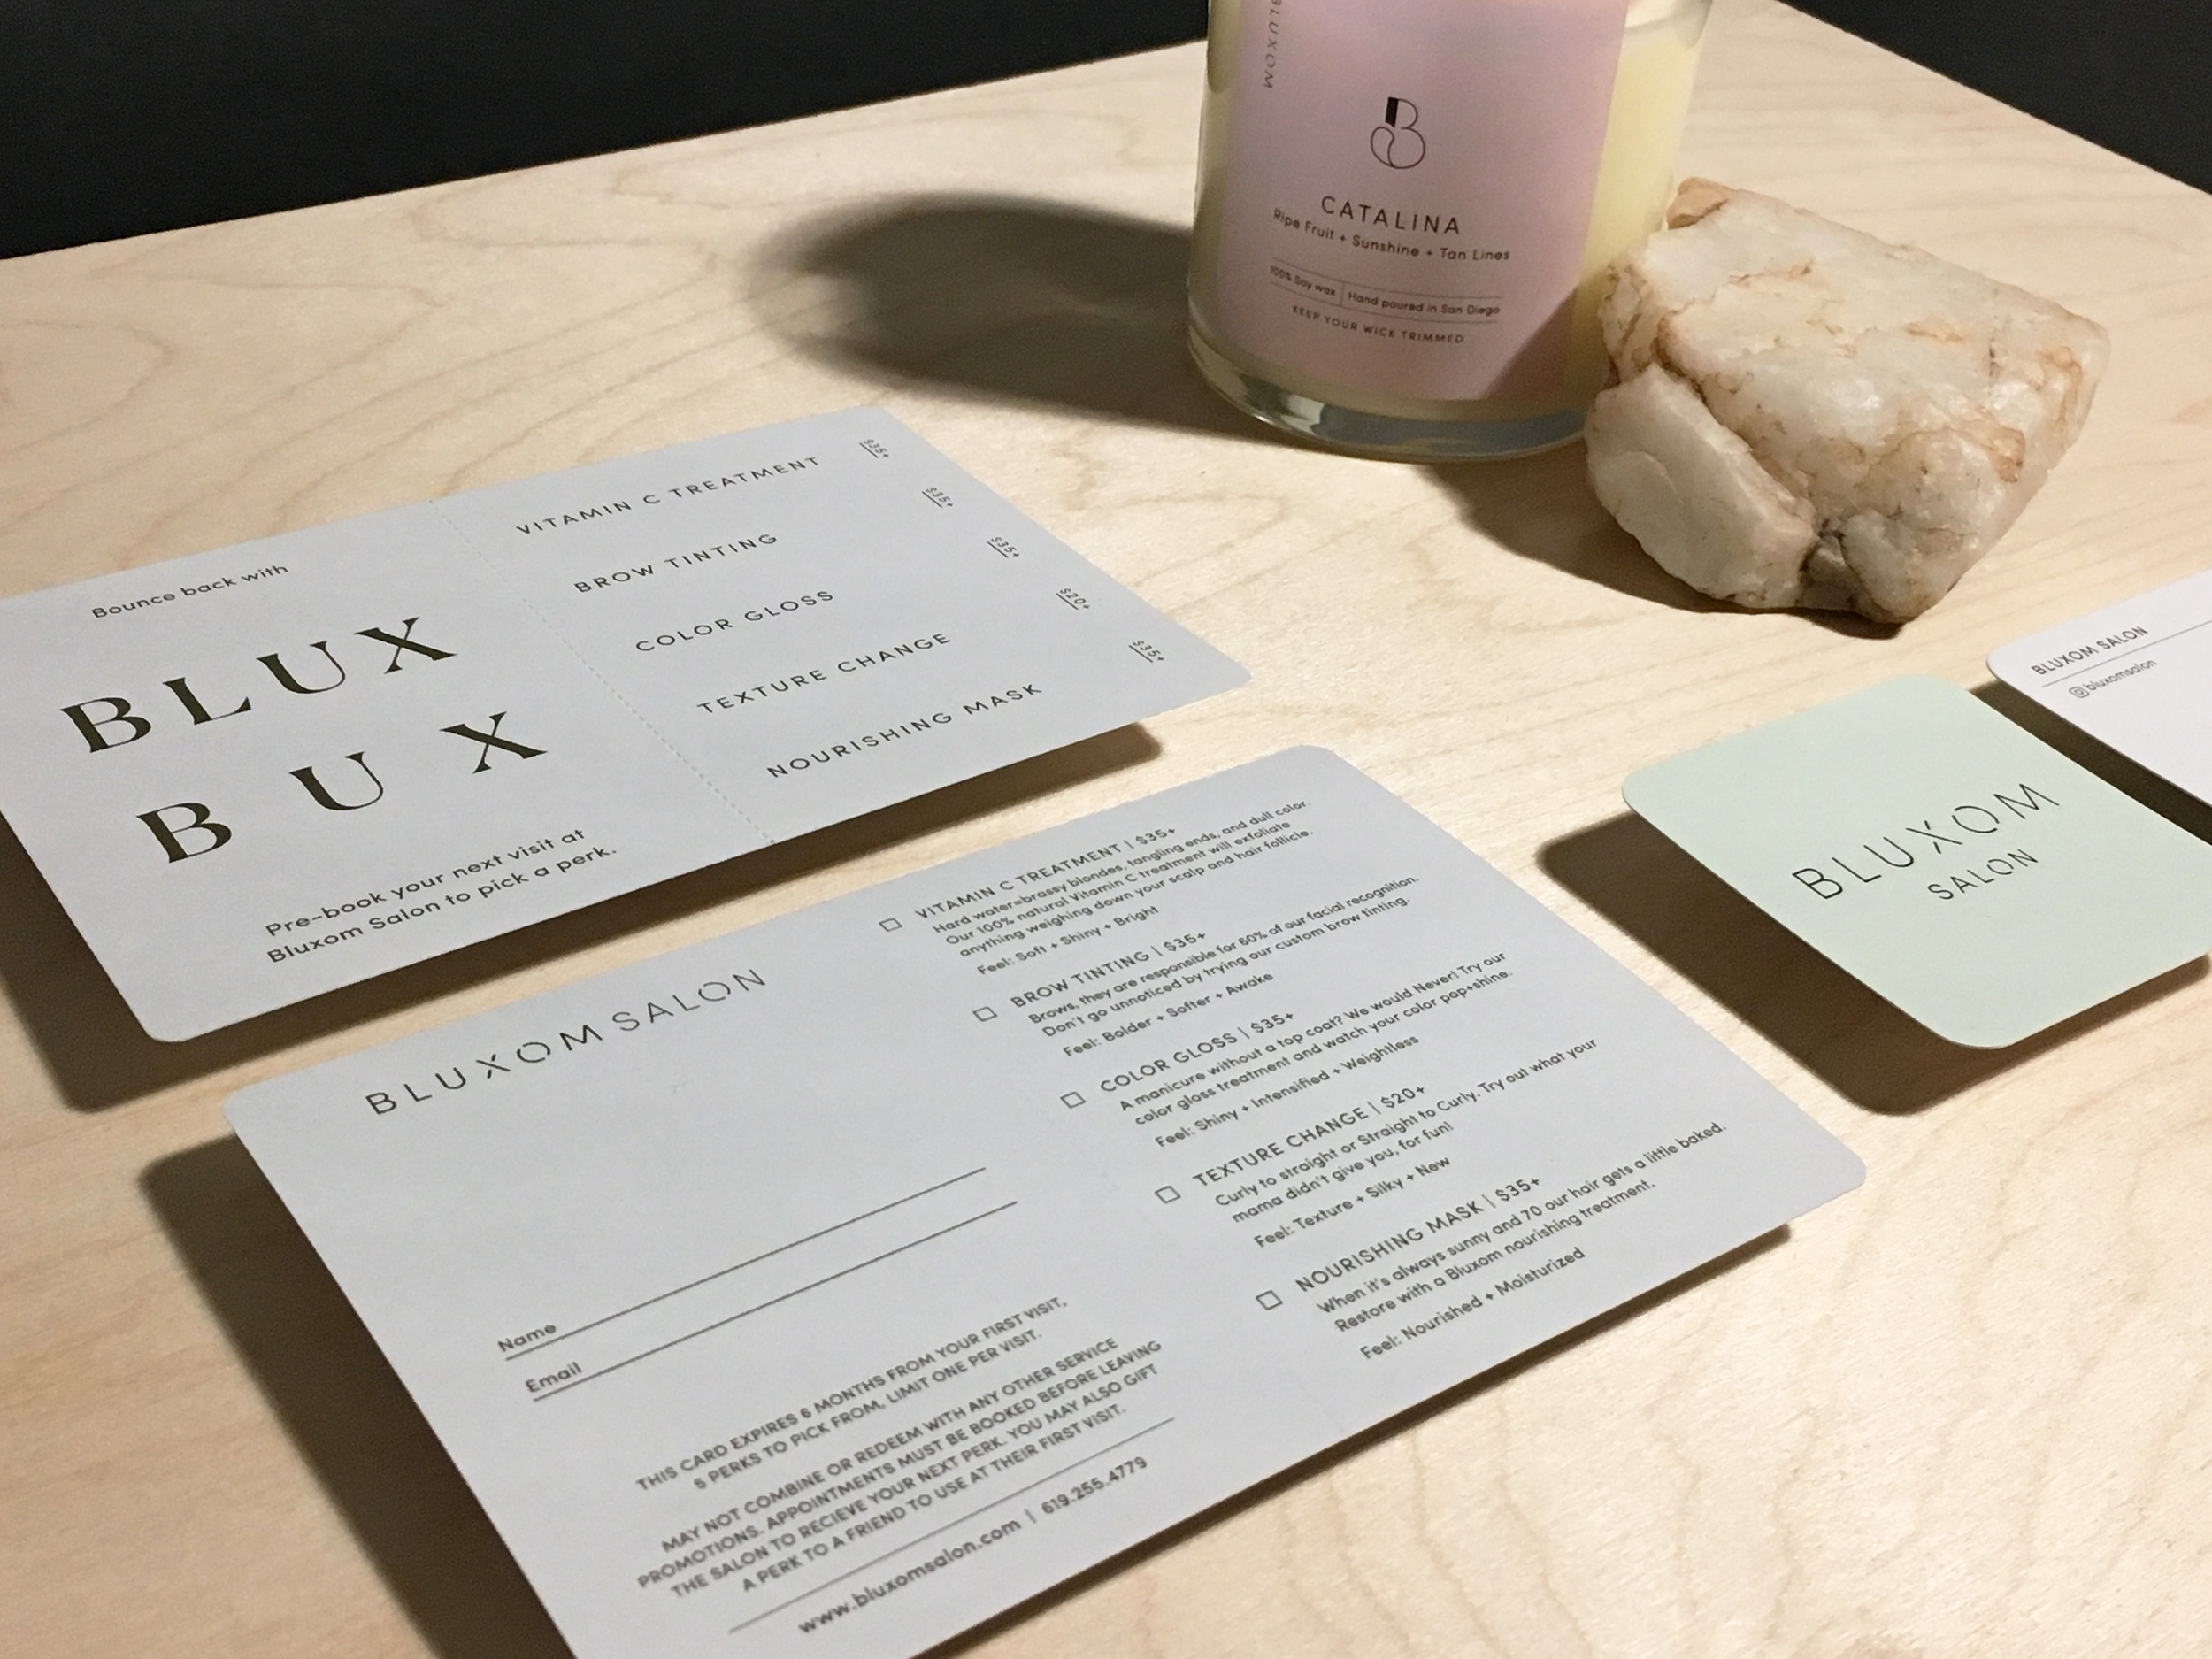 Collection : perforated Blux Bux cards, business cards and candle labels for the Bluxom candle line.